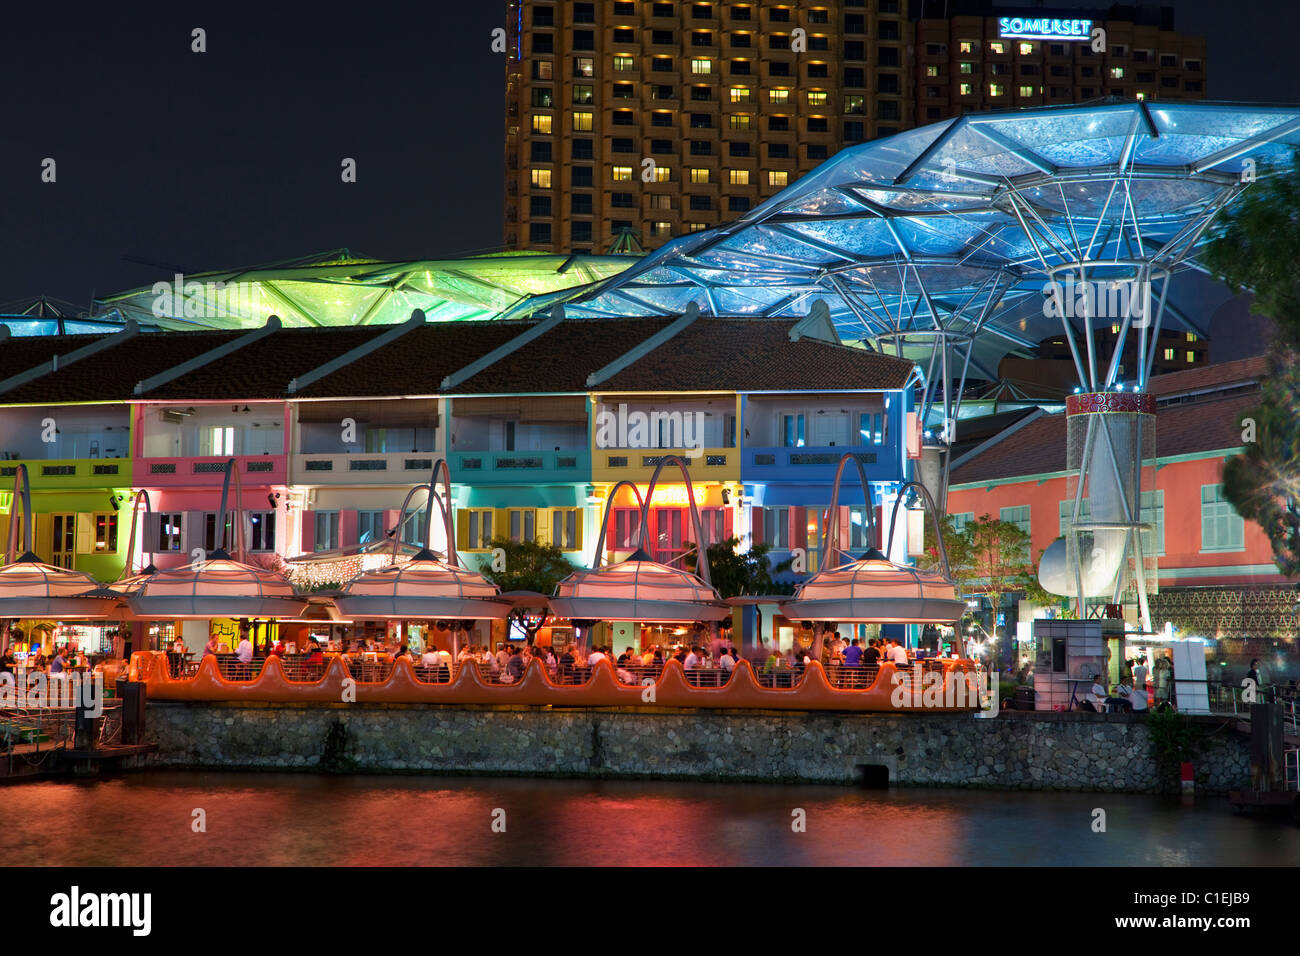 Riverside restaurants at the entertainment district of Clarke Quay, Singapore - Stock Image